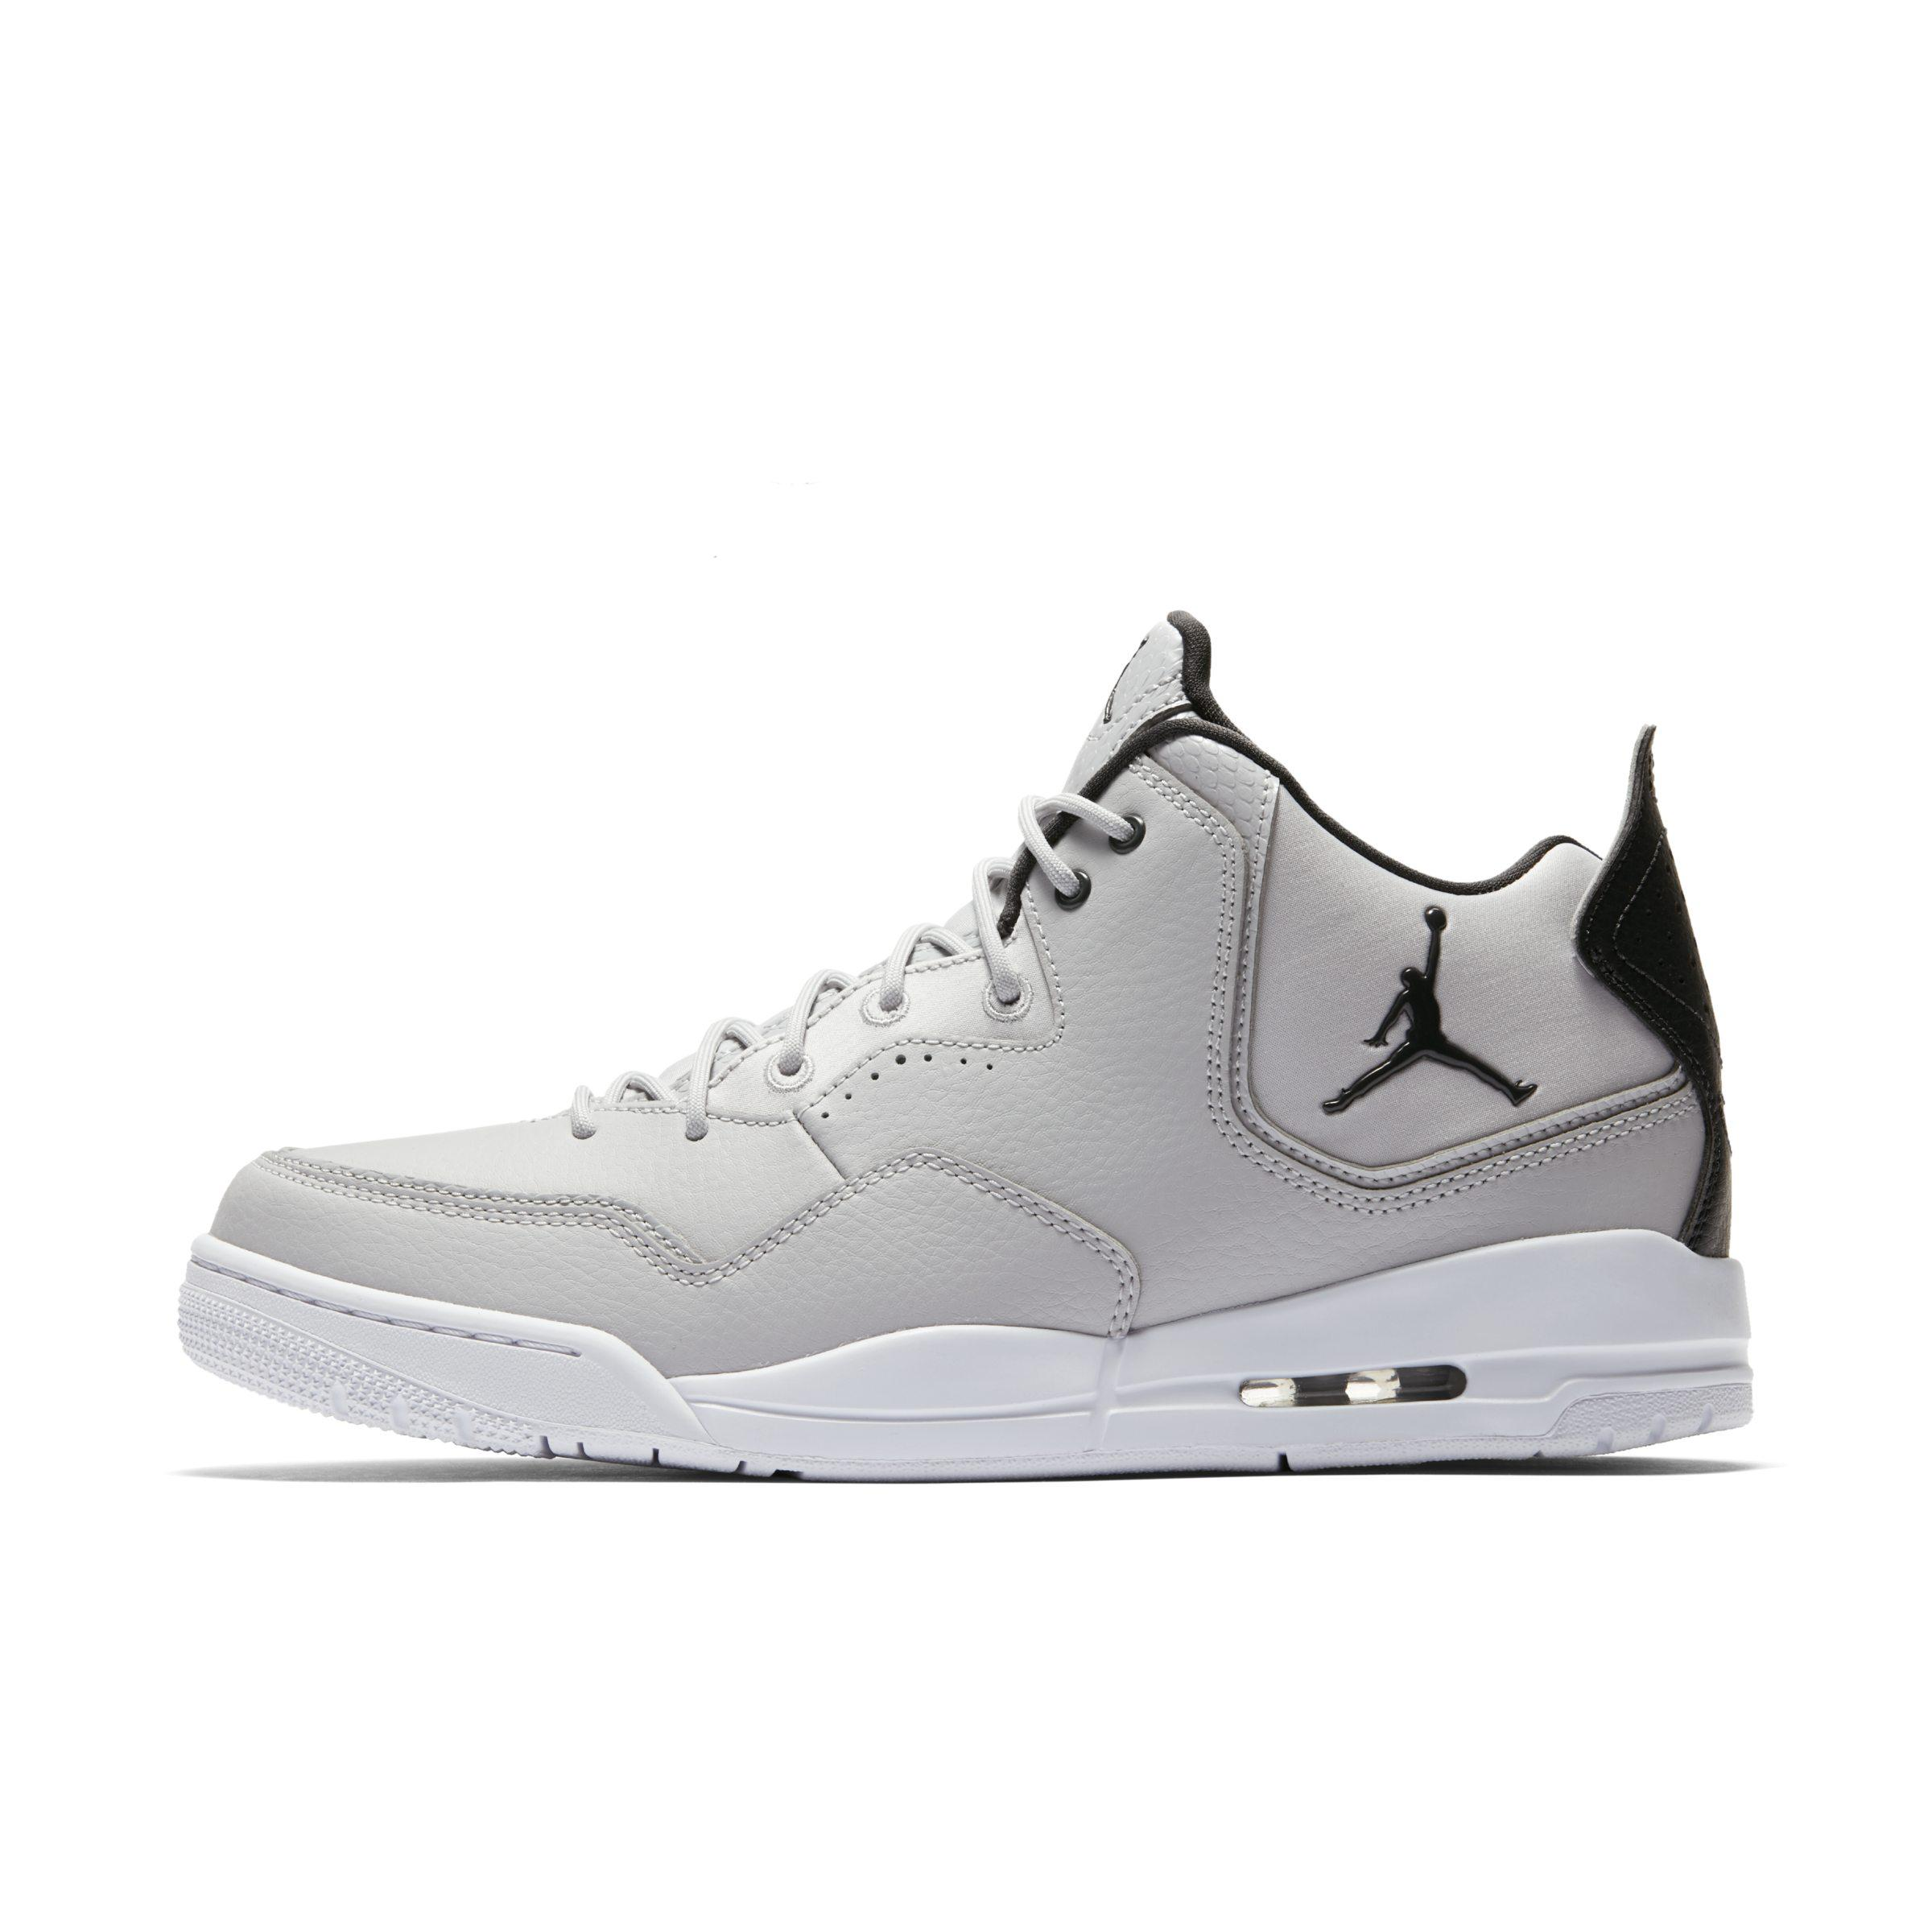 5310e7bb819 Nike Jordan Courtside 23 Shoe in Gray for Men - Lyst